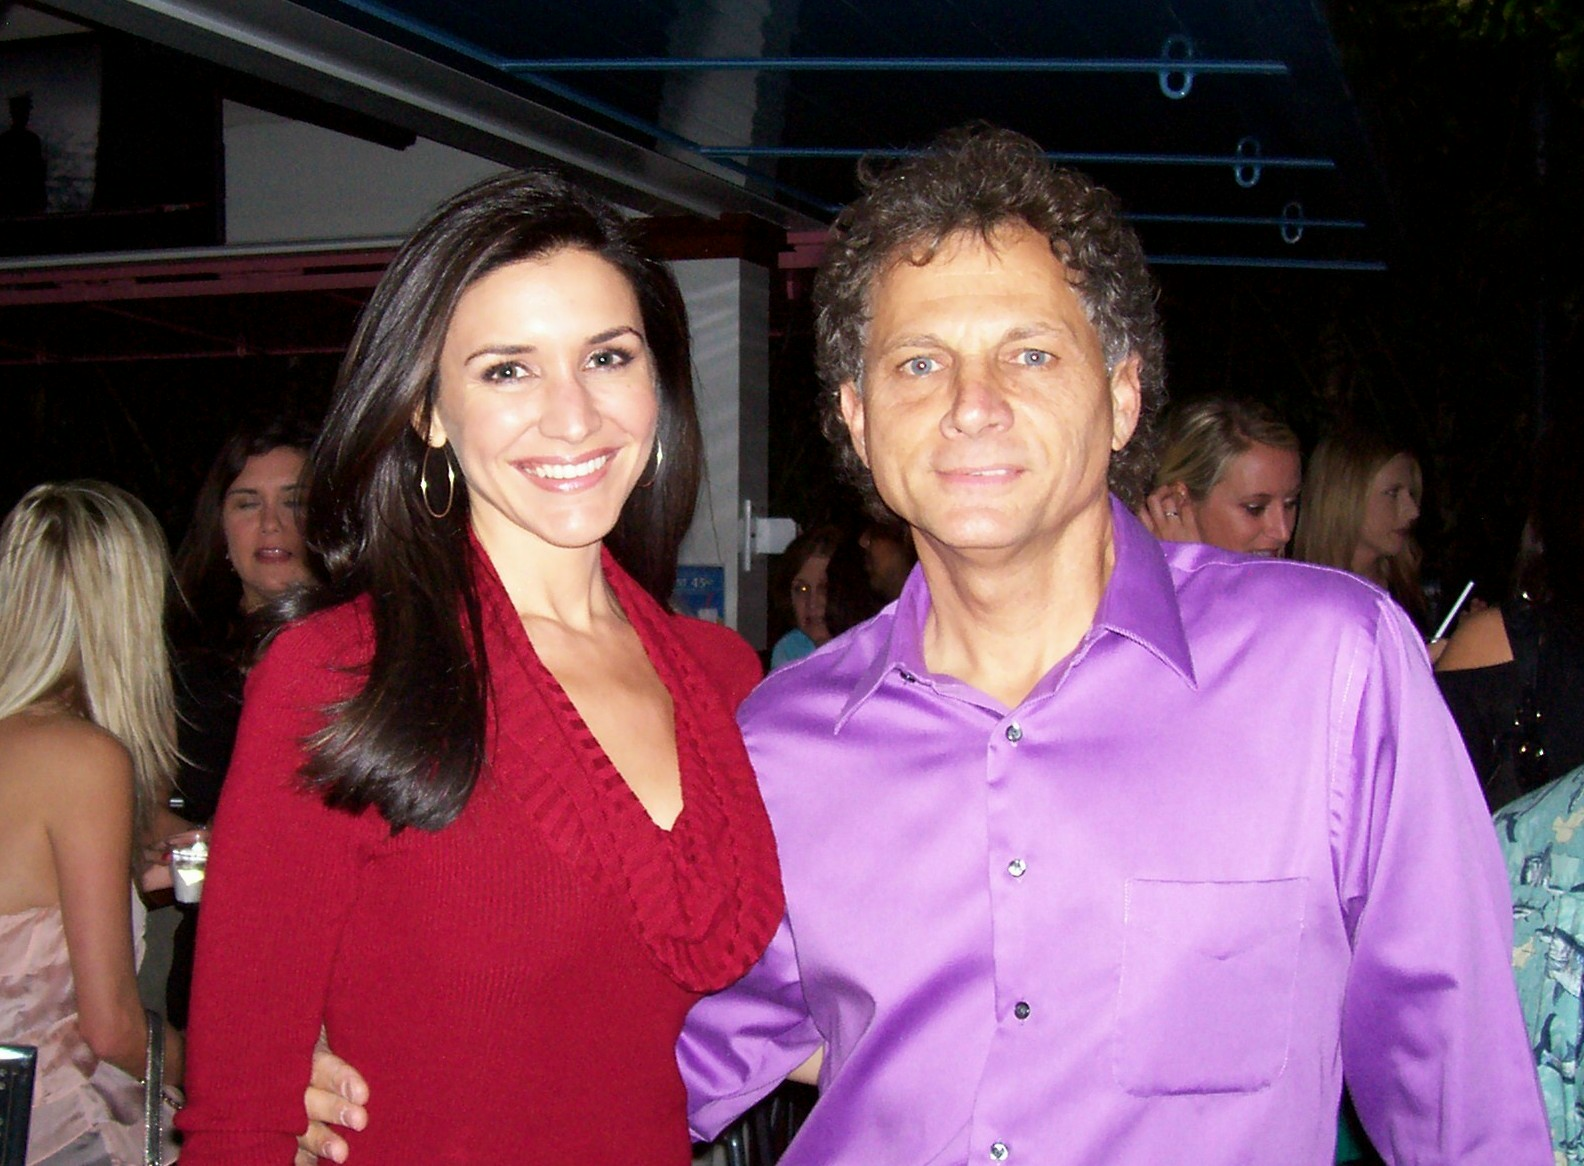 2011 with Lissette Gonzalez (Ch 4 weather girl)